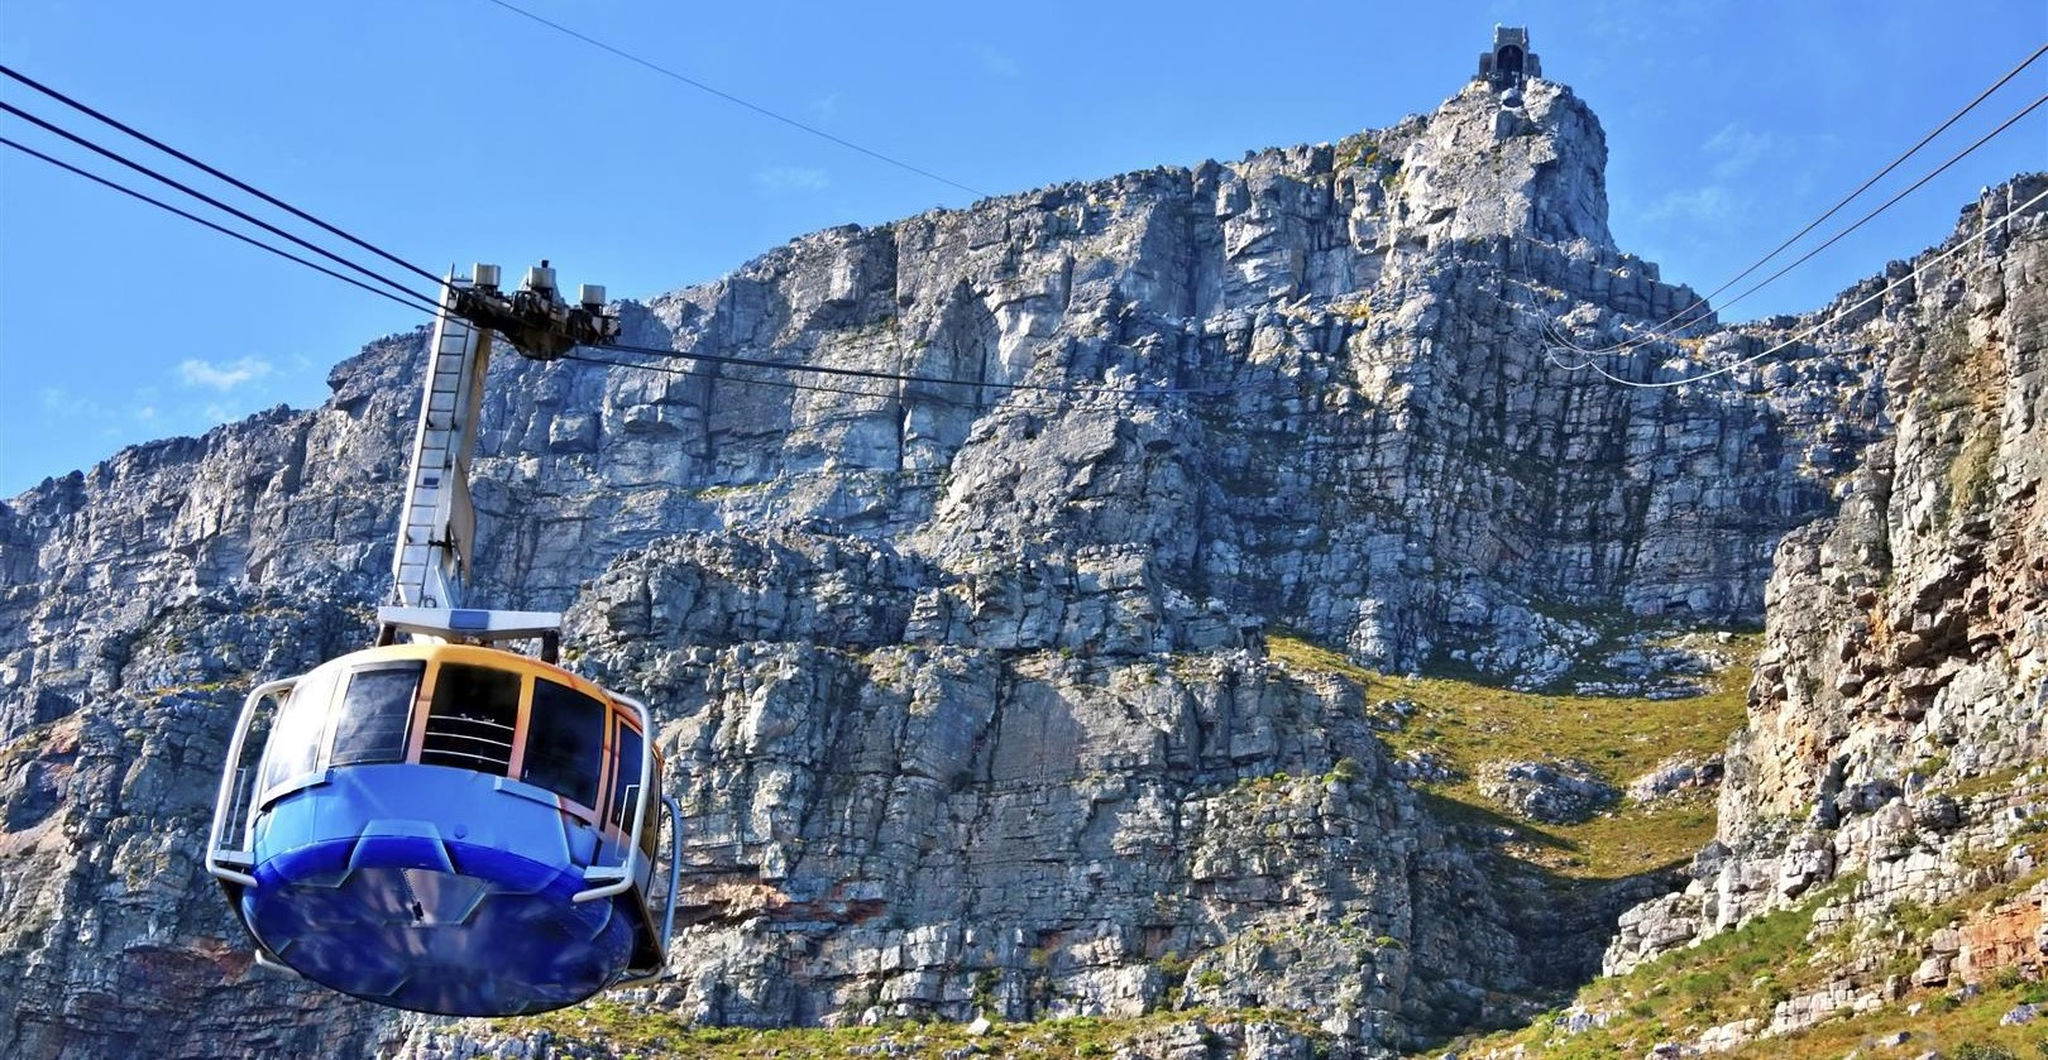 table mountain cable way in cape town south africa